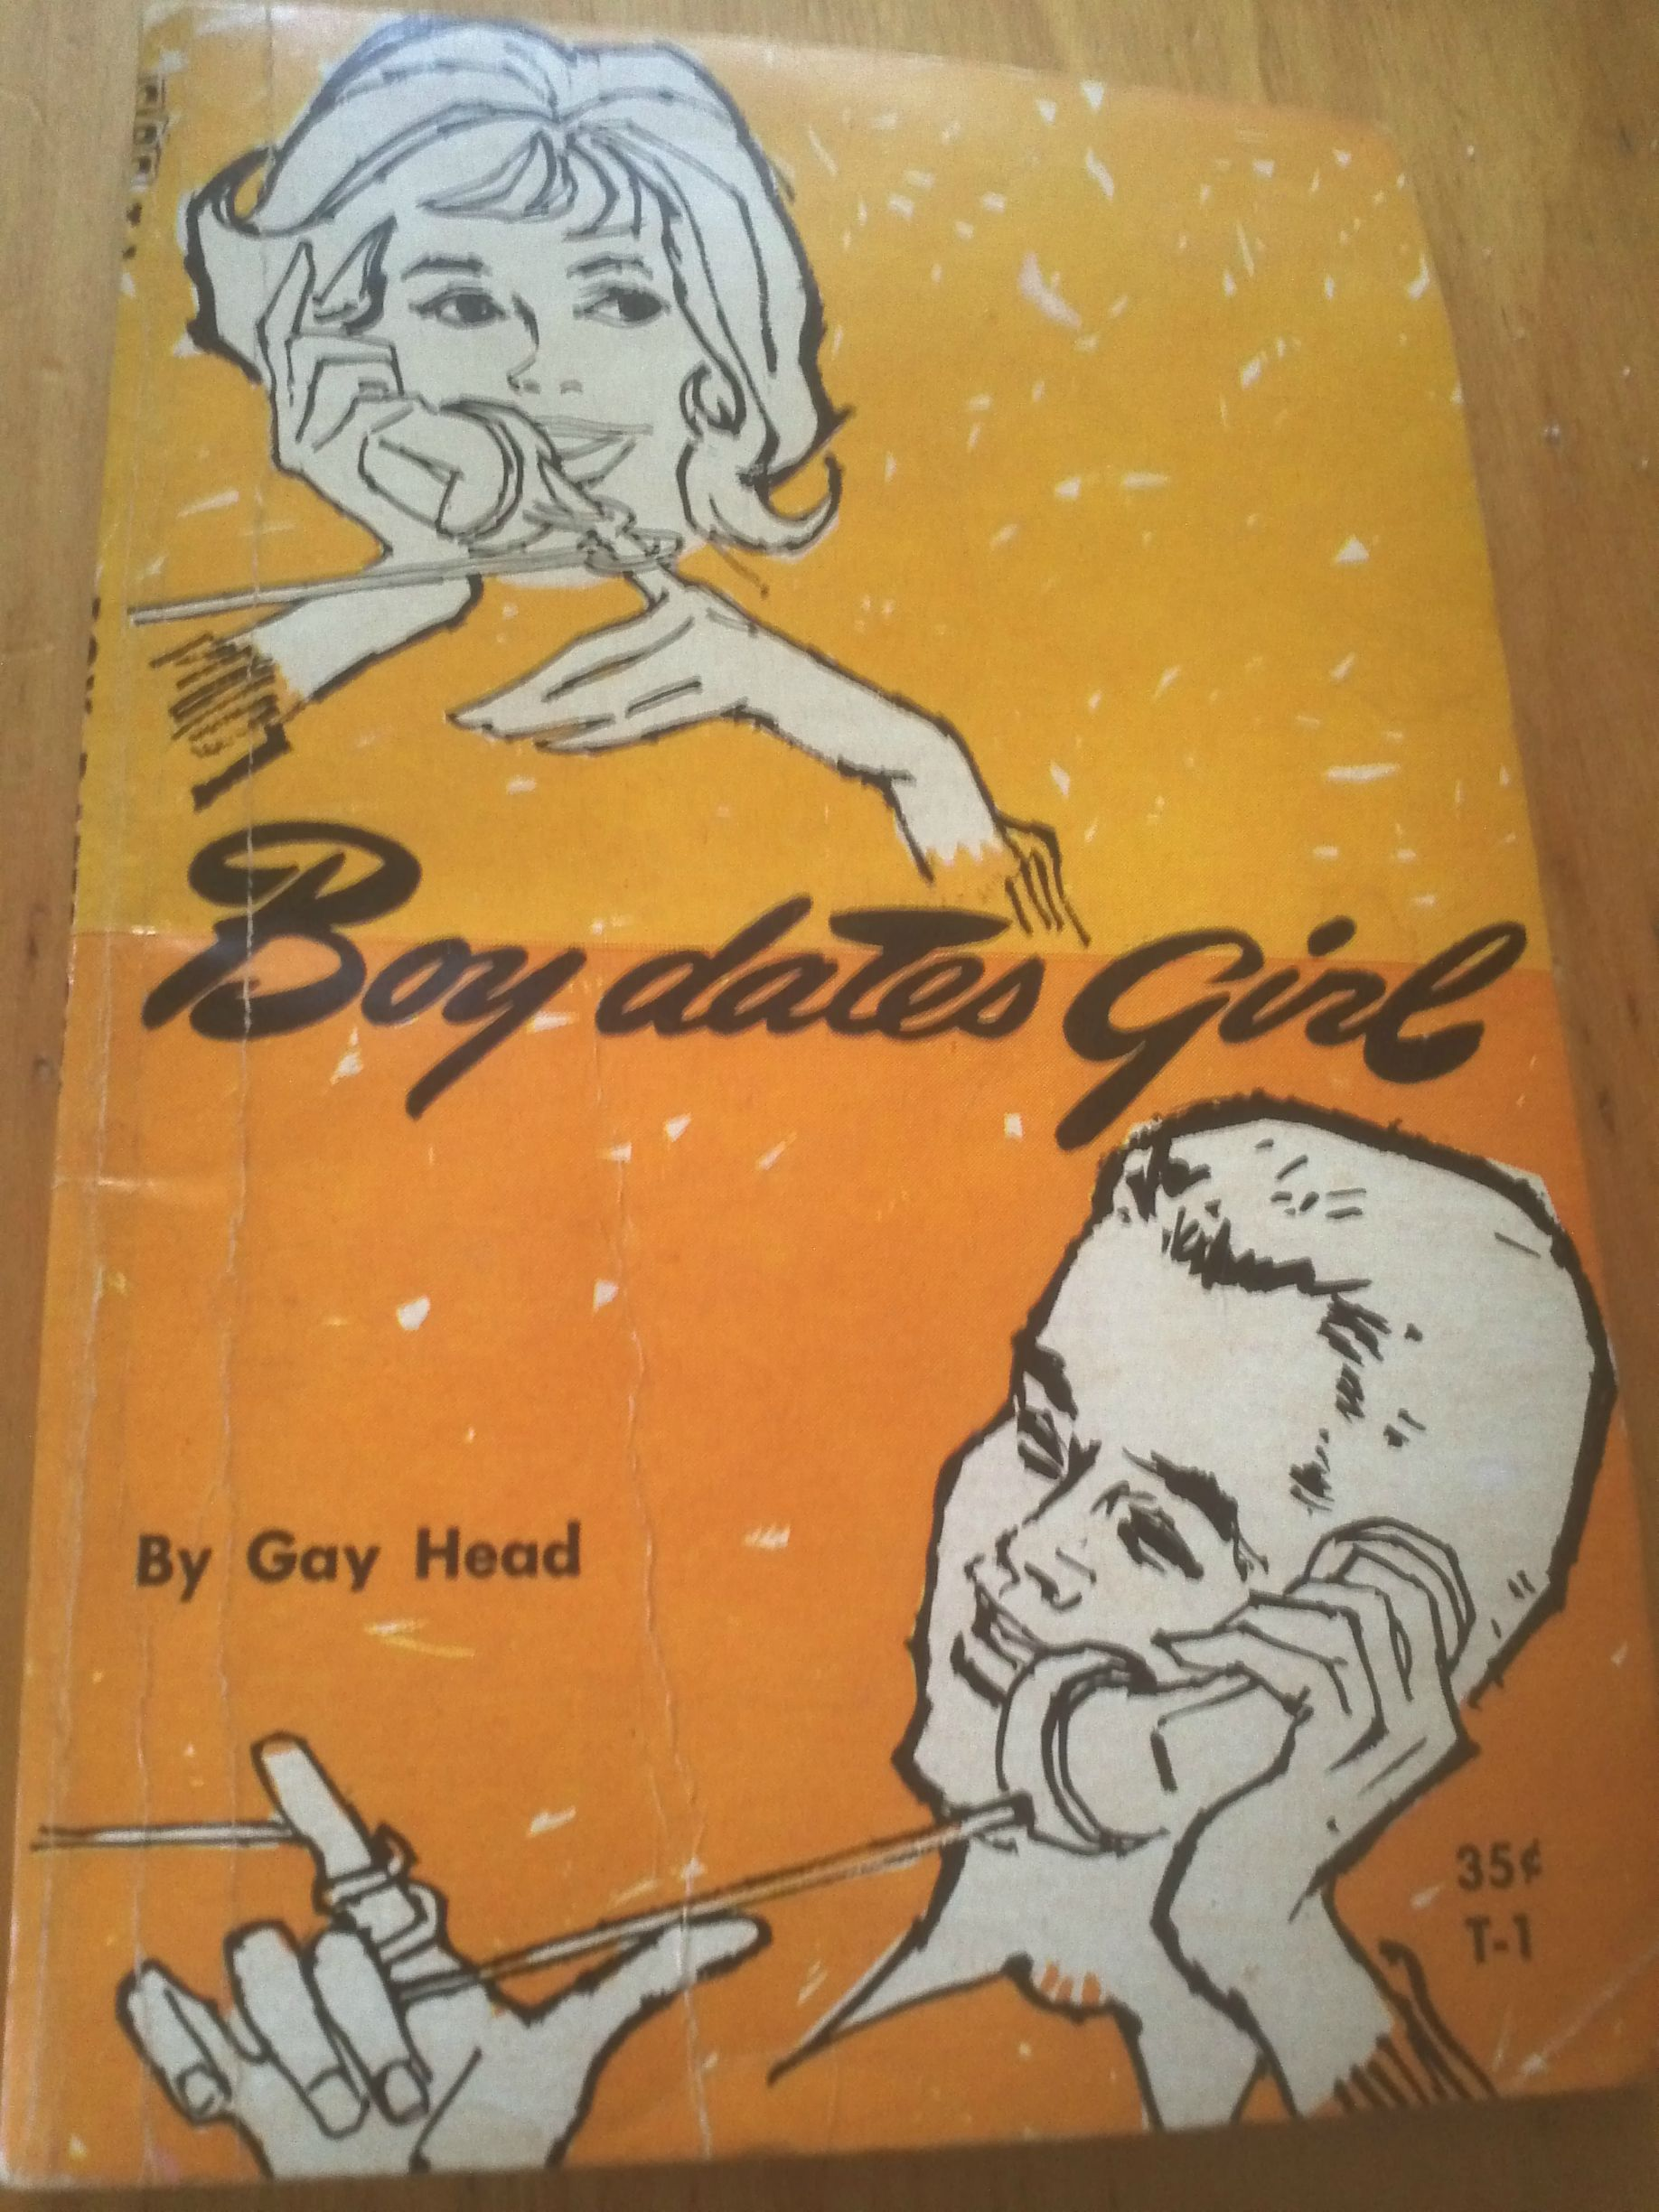 1949 book on dating